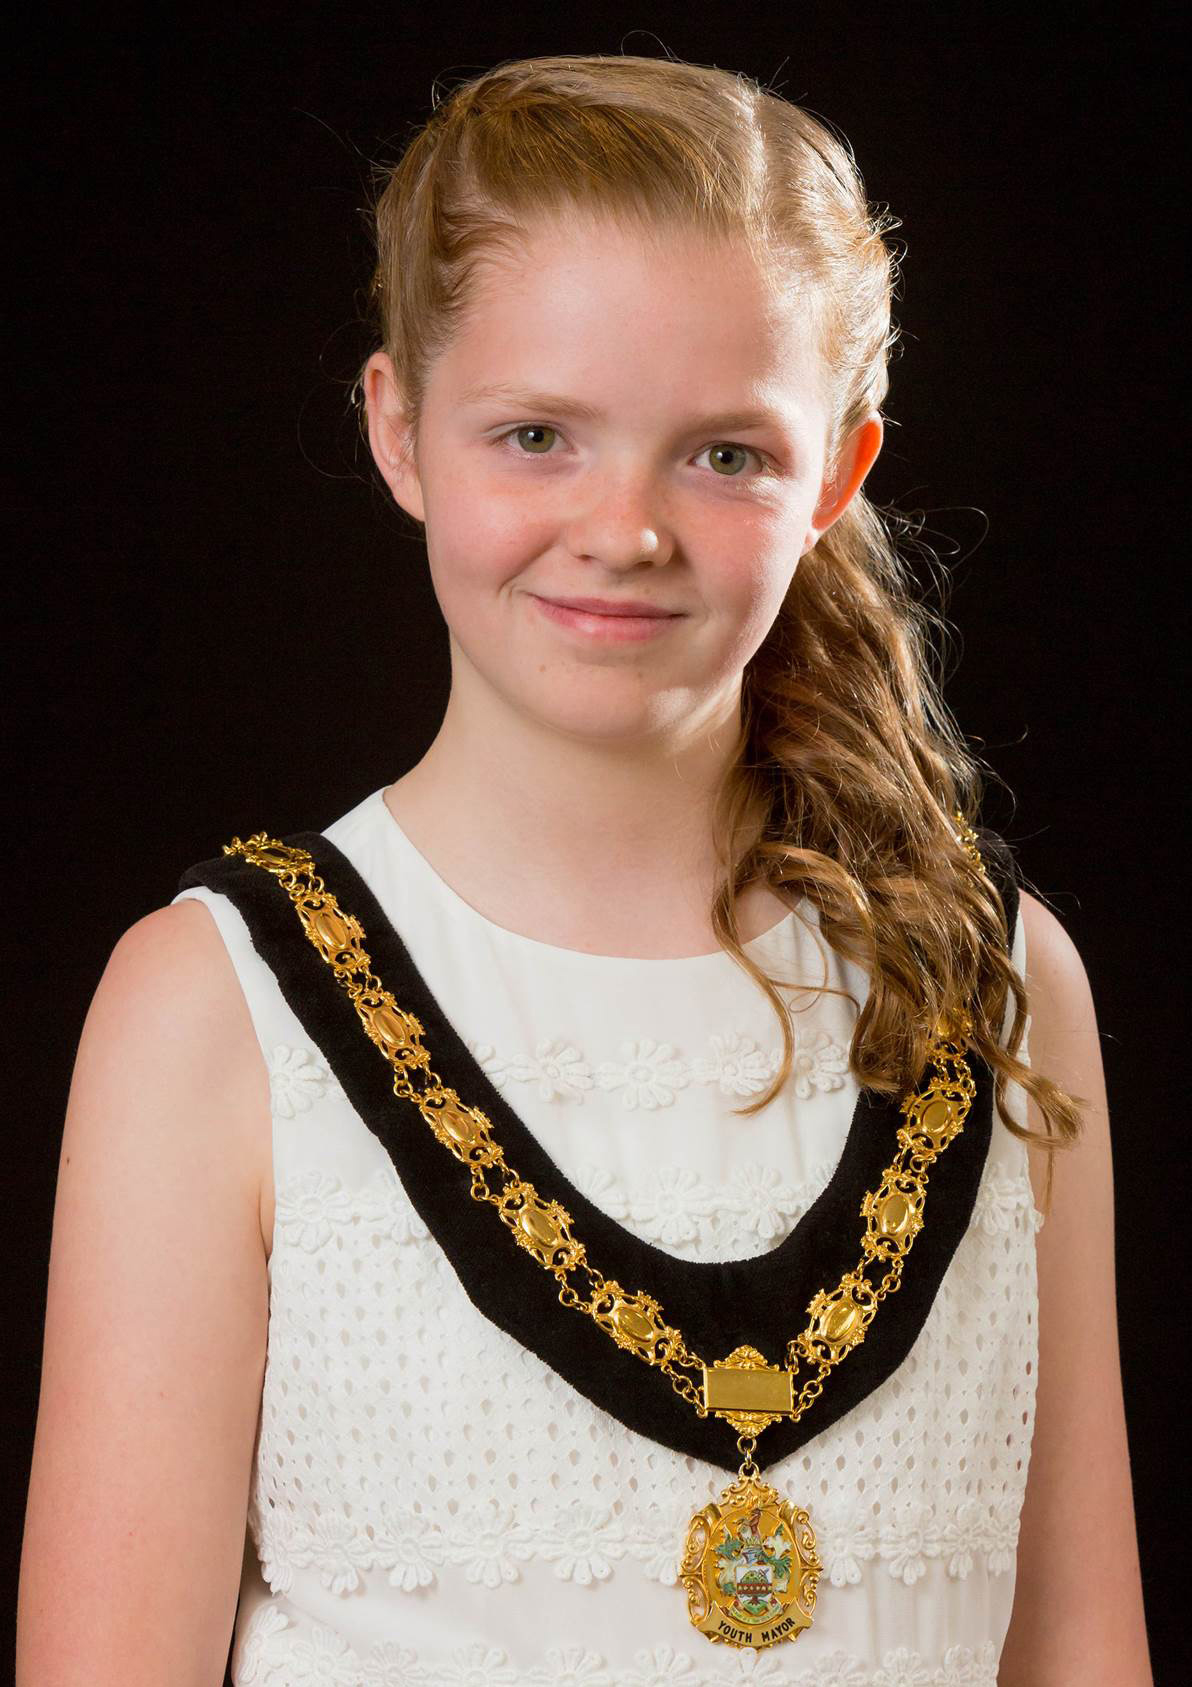 Youth Mayor election process gets underway in Stevenage